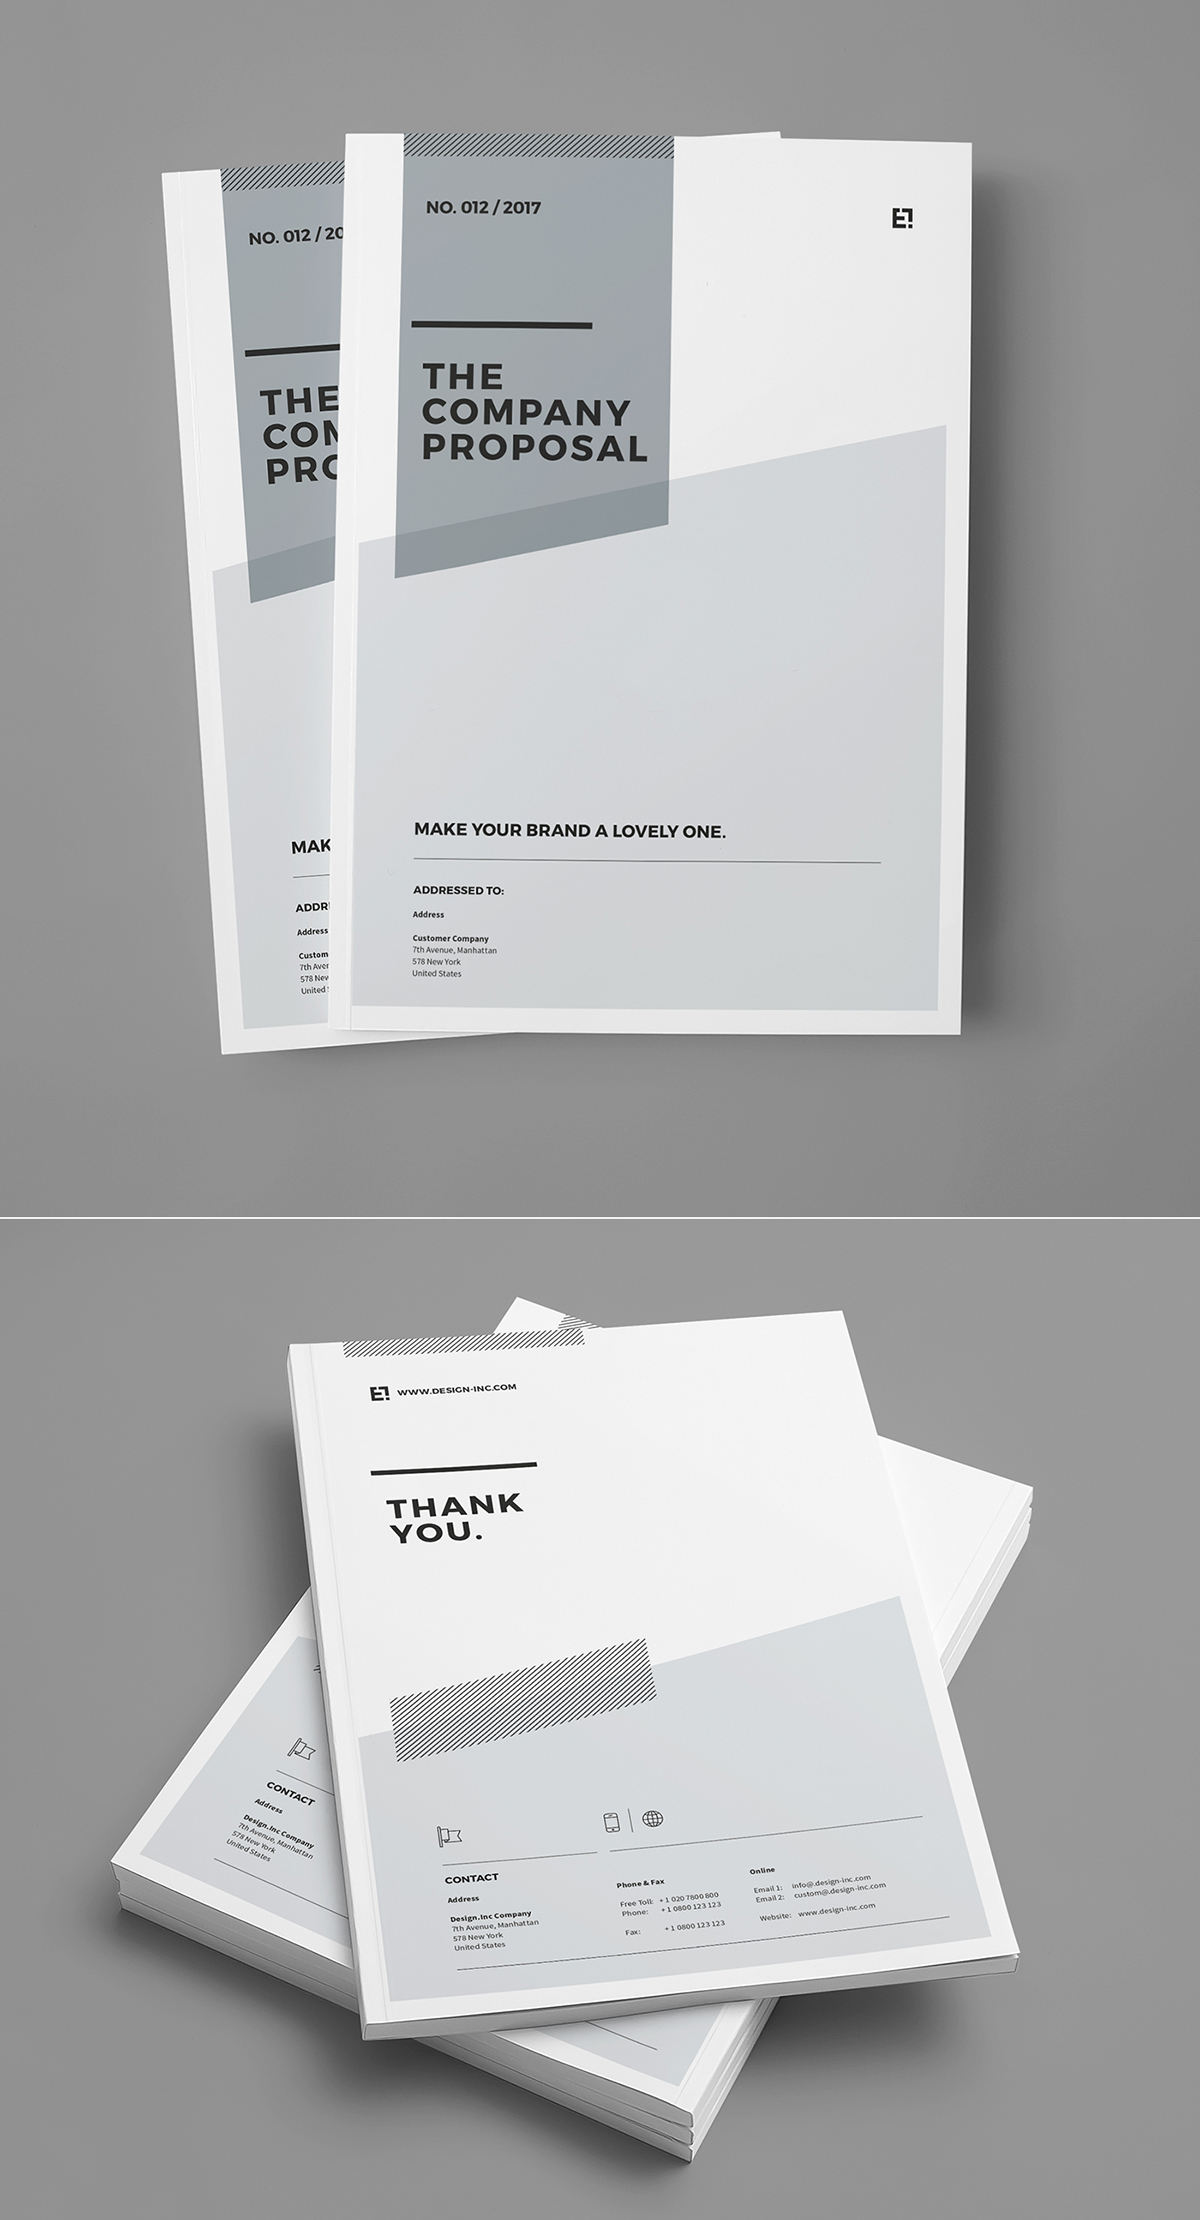 Proposal design on behance click here to download the complete proposal saigontimesfo